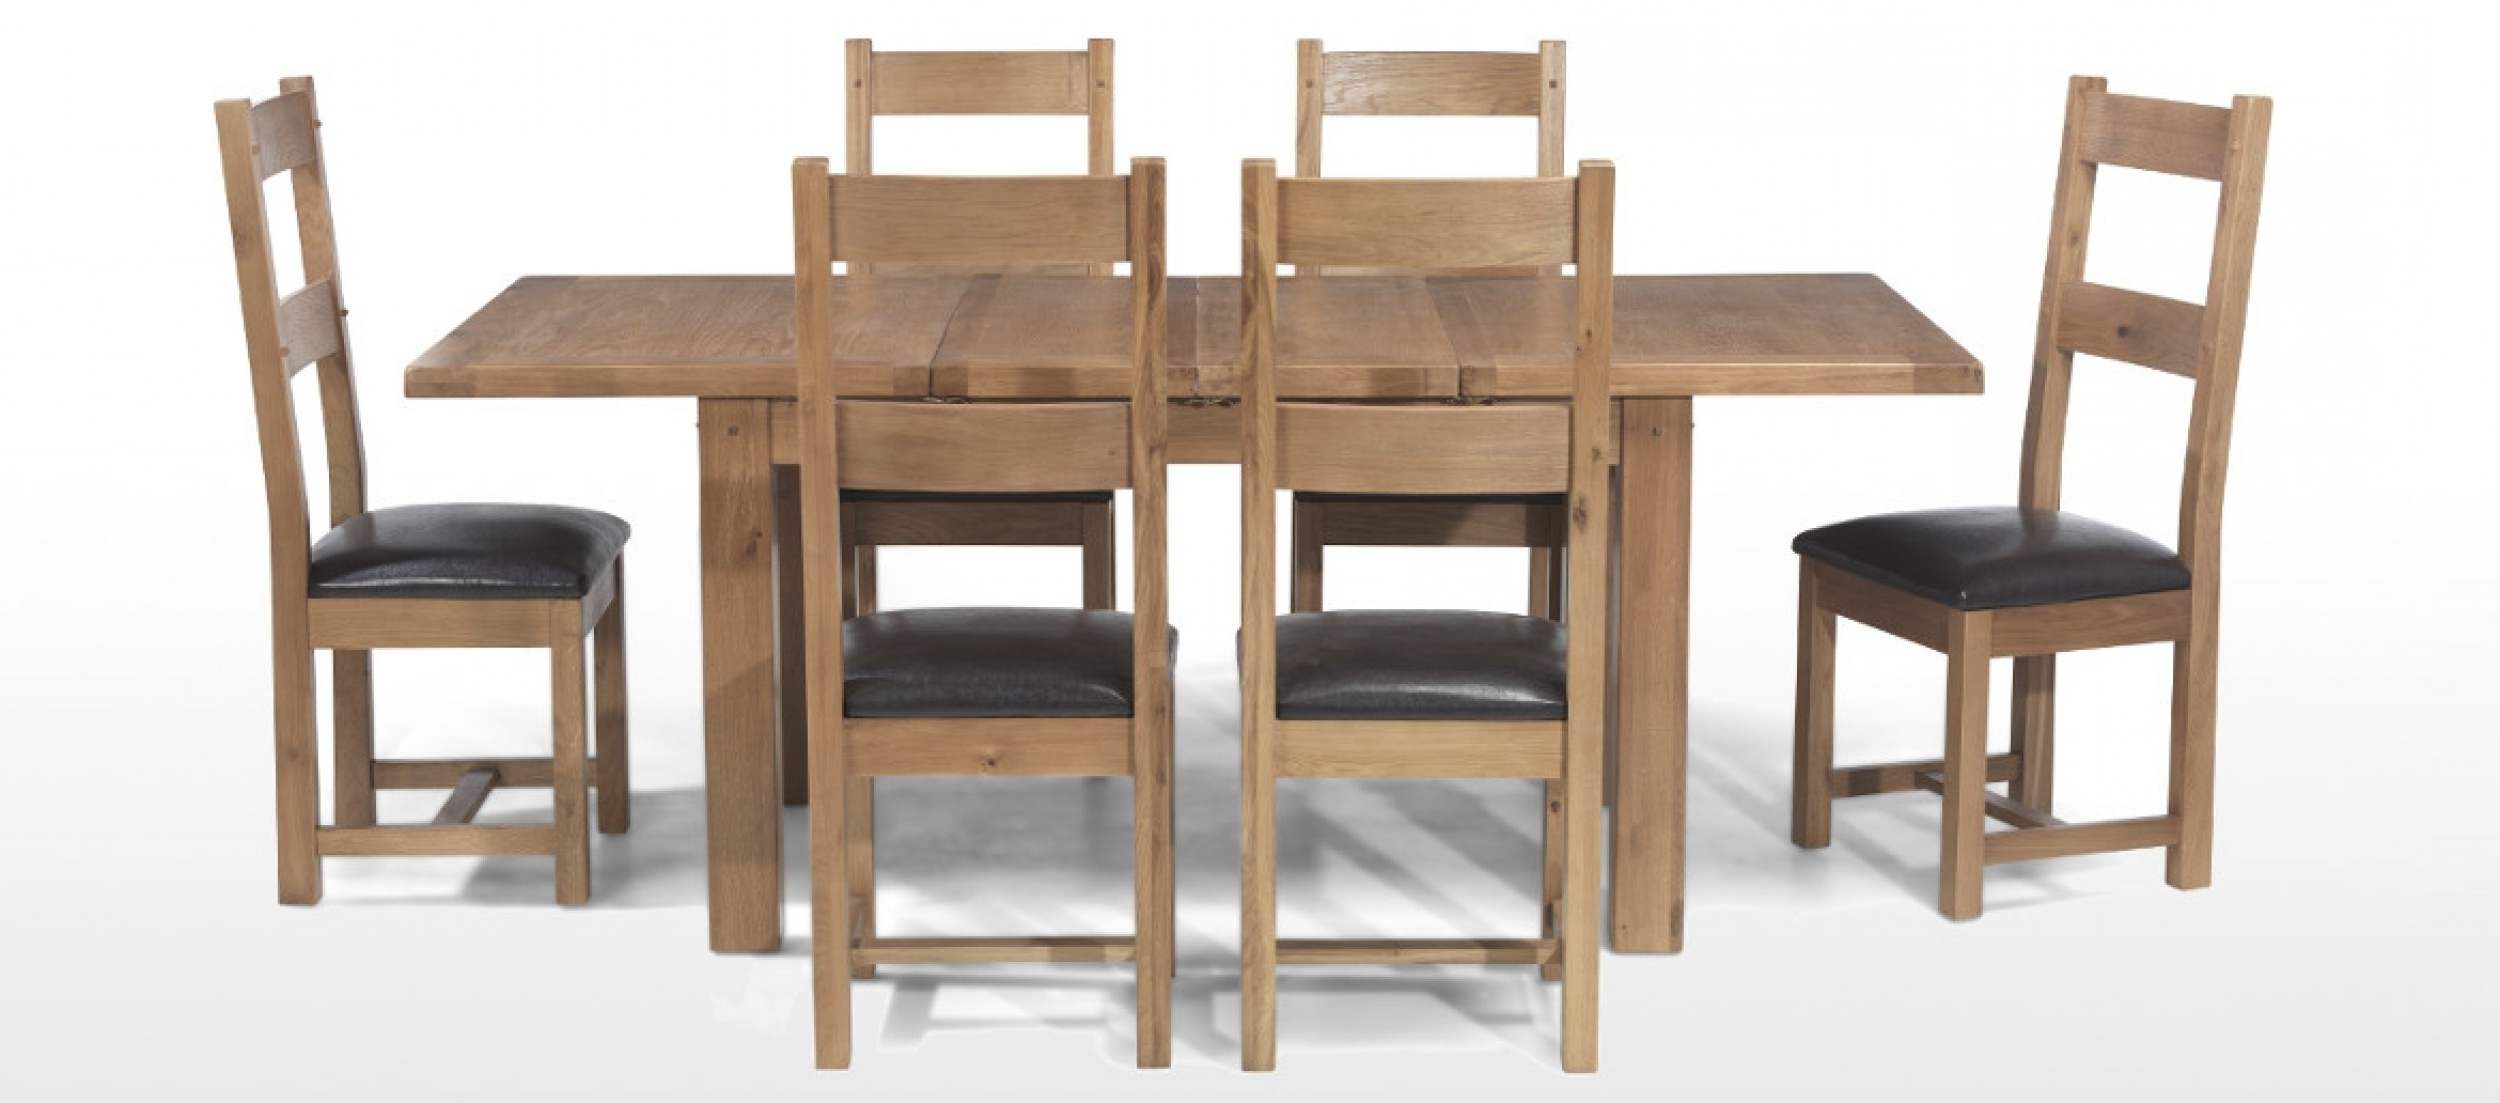 Oak Dining Set 6 Chairs With Regard To 2018 Rustic Oak 132 198 Cm Extending Dining Table And 6 Chairs (View 4 of 25)